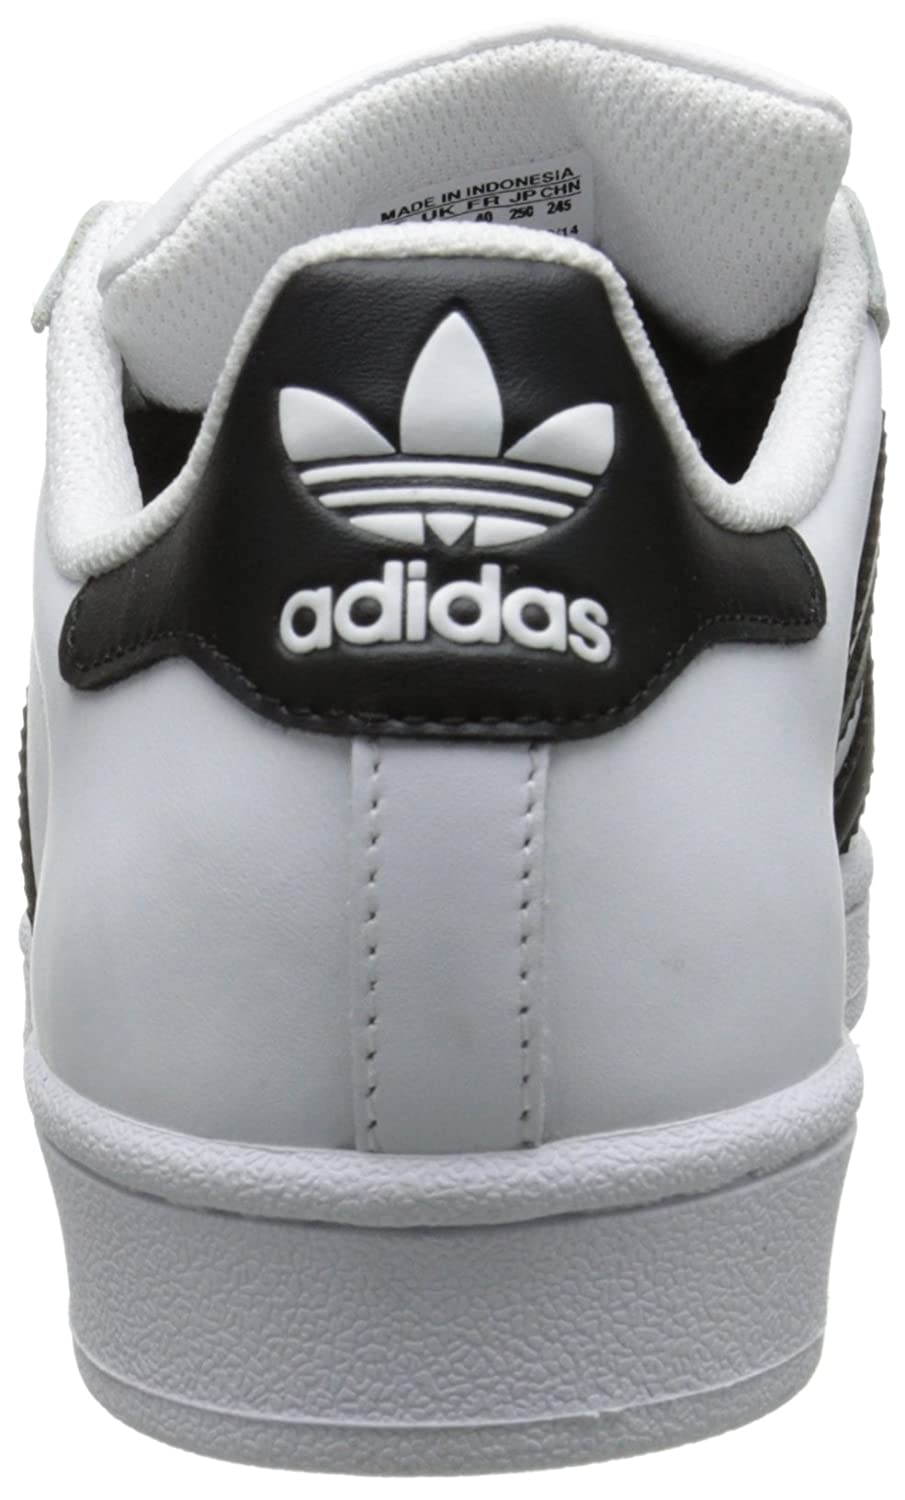 Superstar Chaussures Womens Adidas Casual 7.5 aVdtVXbVAg